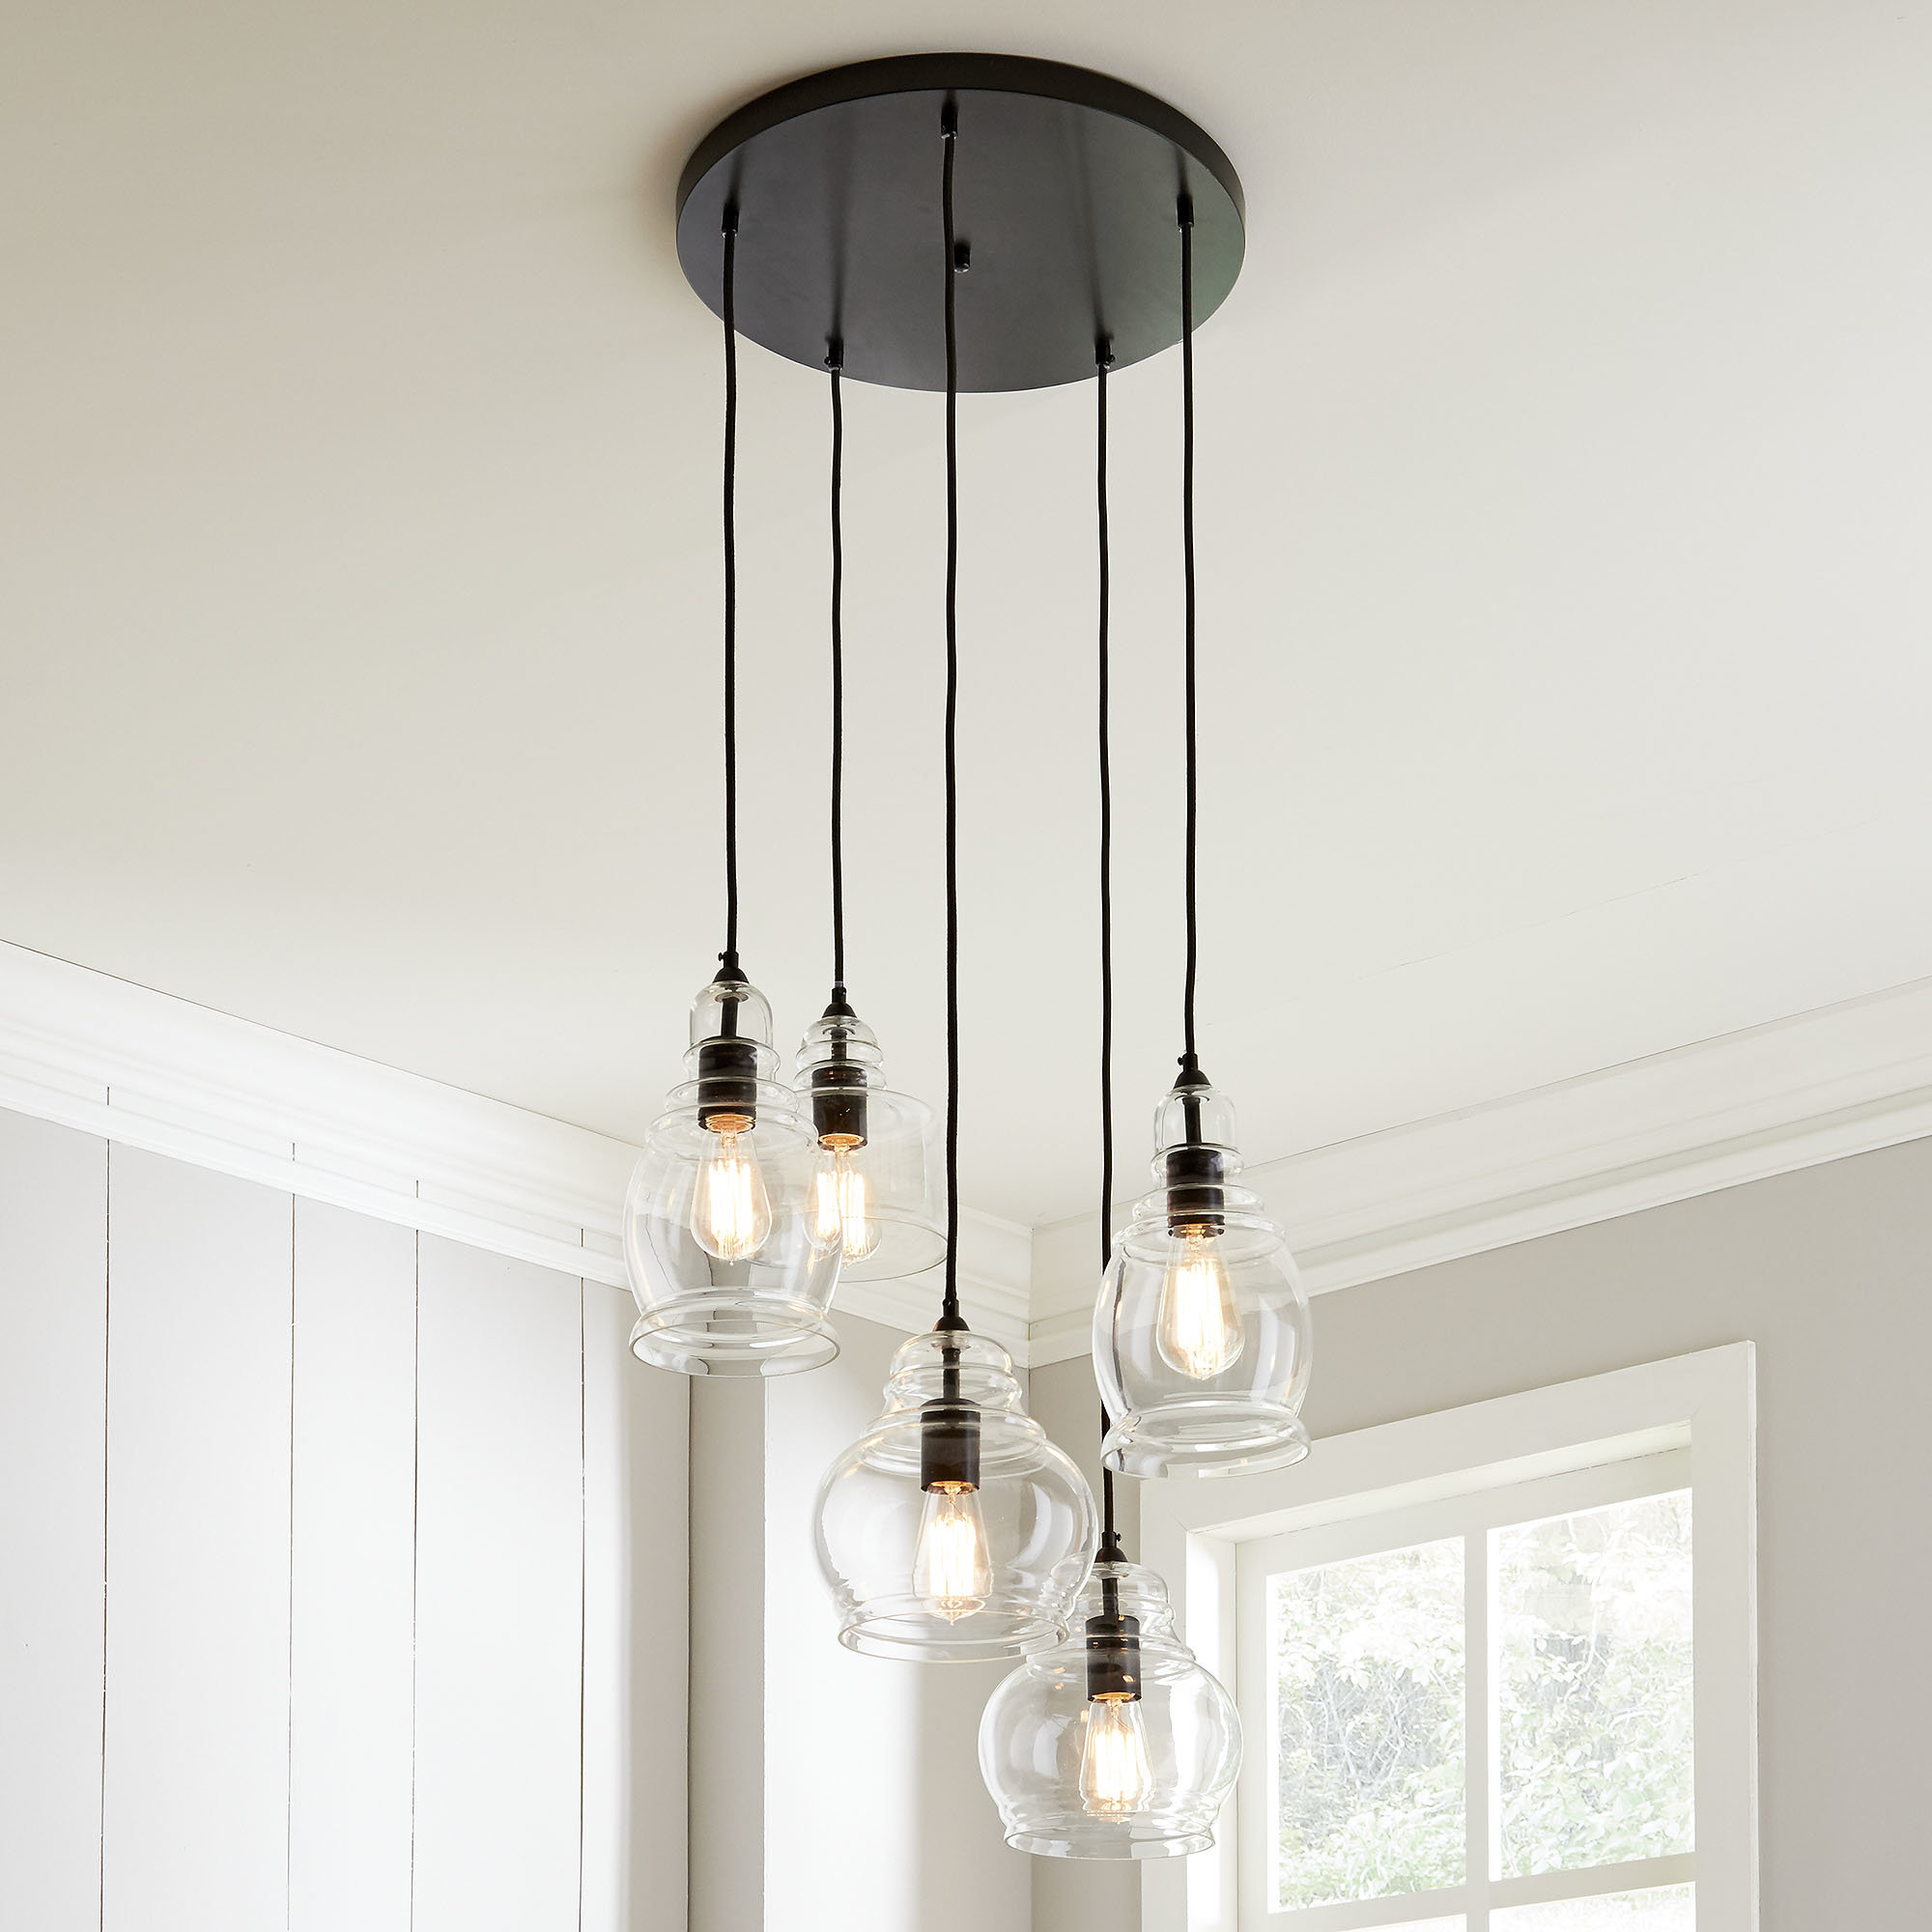 2019 4 – 6 Light Cluster Pendant Lighting You'll Love In 2019 Throughout Schutt 5 Light Cluster Pendants (View 3 of 25)